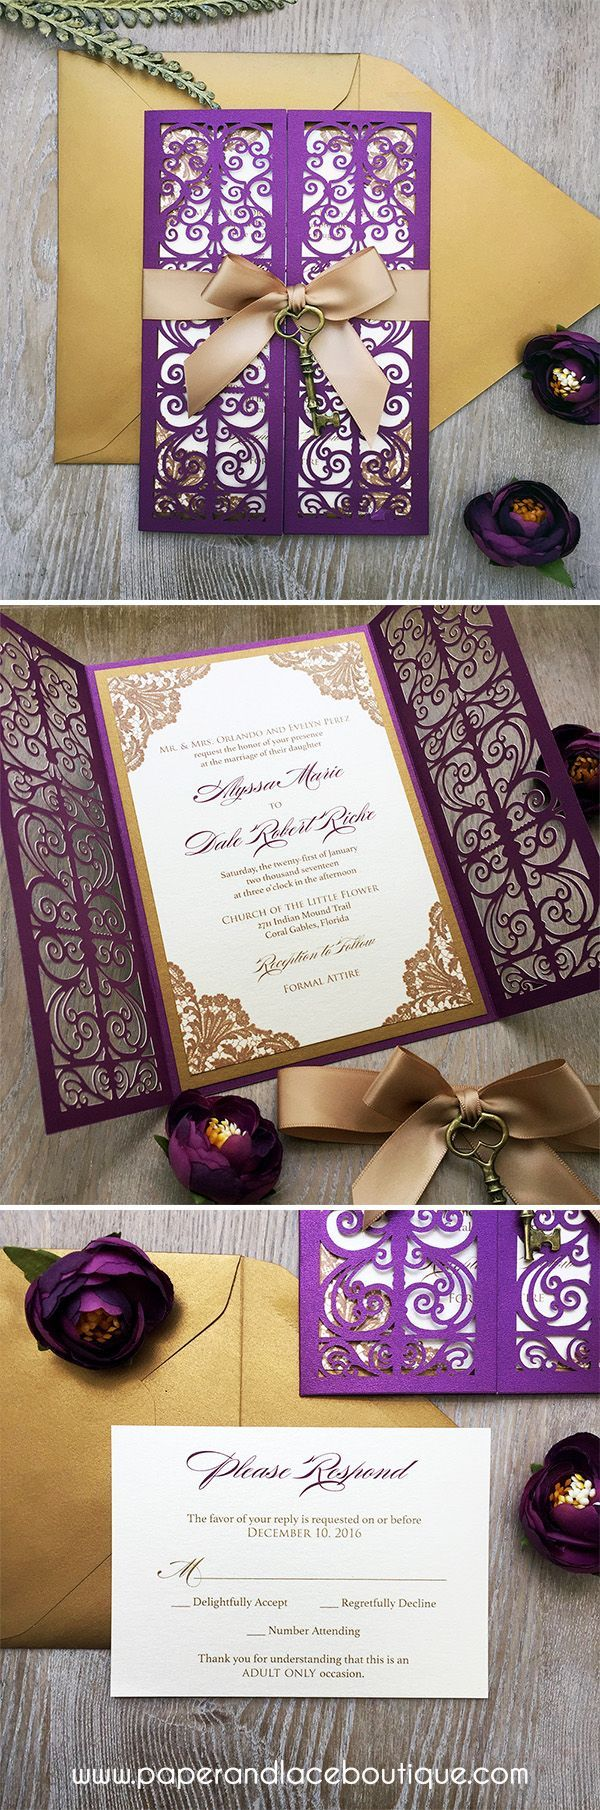 best happily ever after images on pinterest wedding ideas